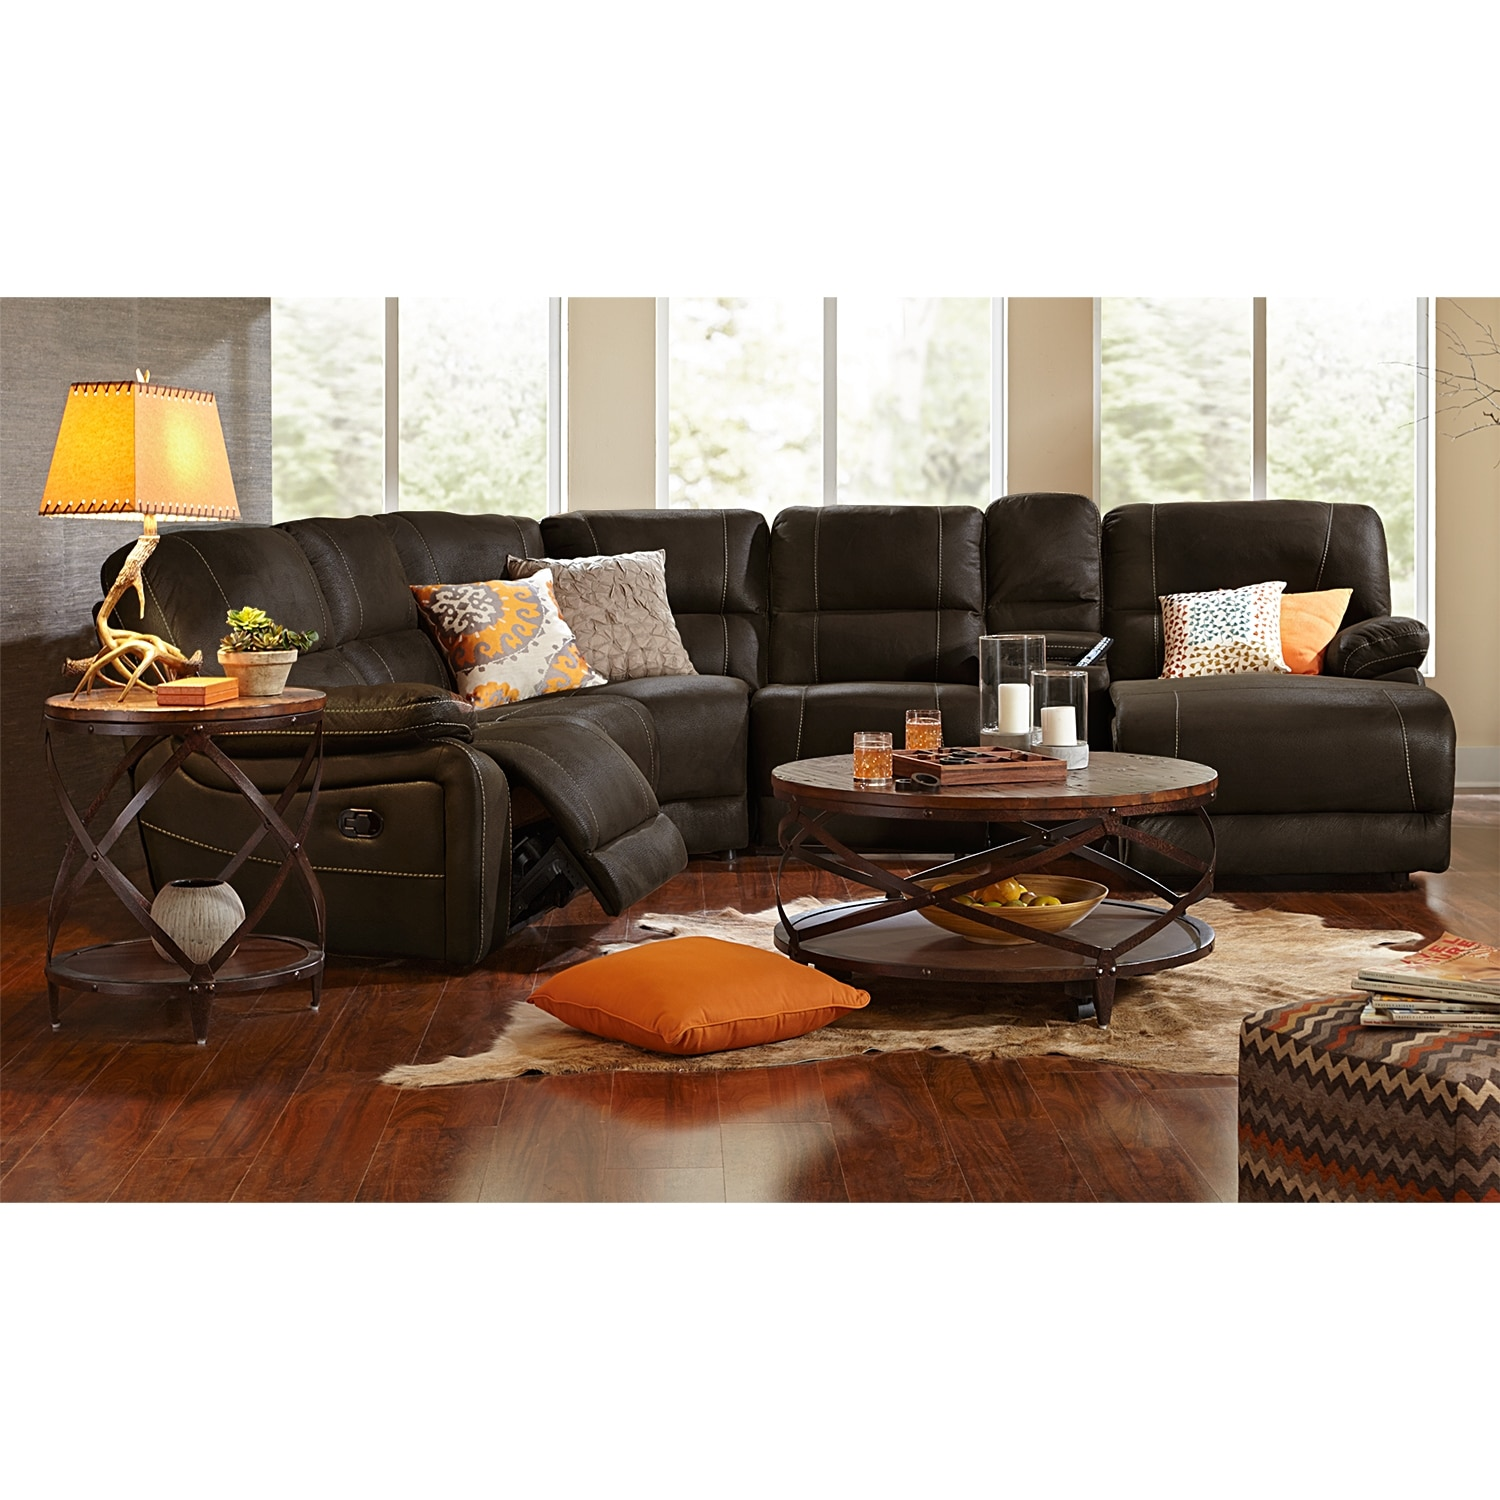 Value City Furniture Store Living Room Sets